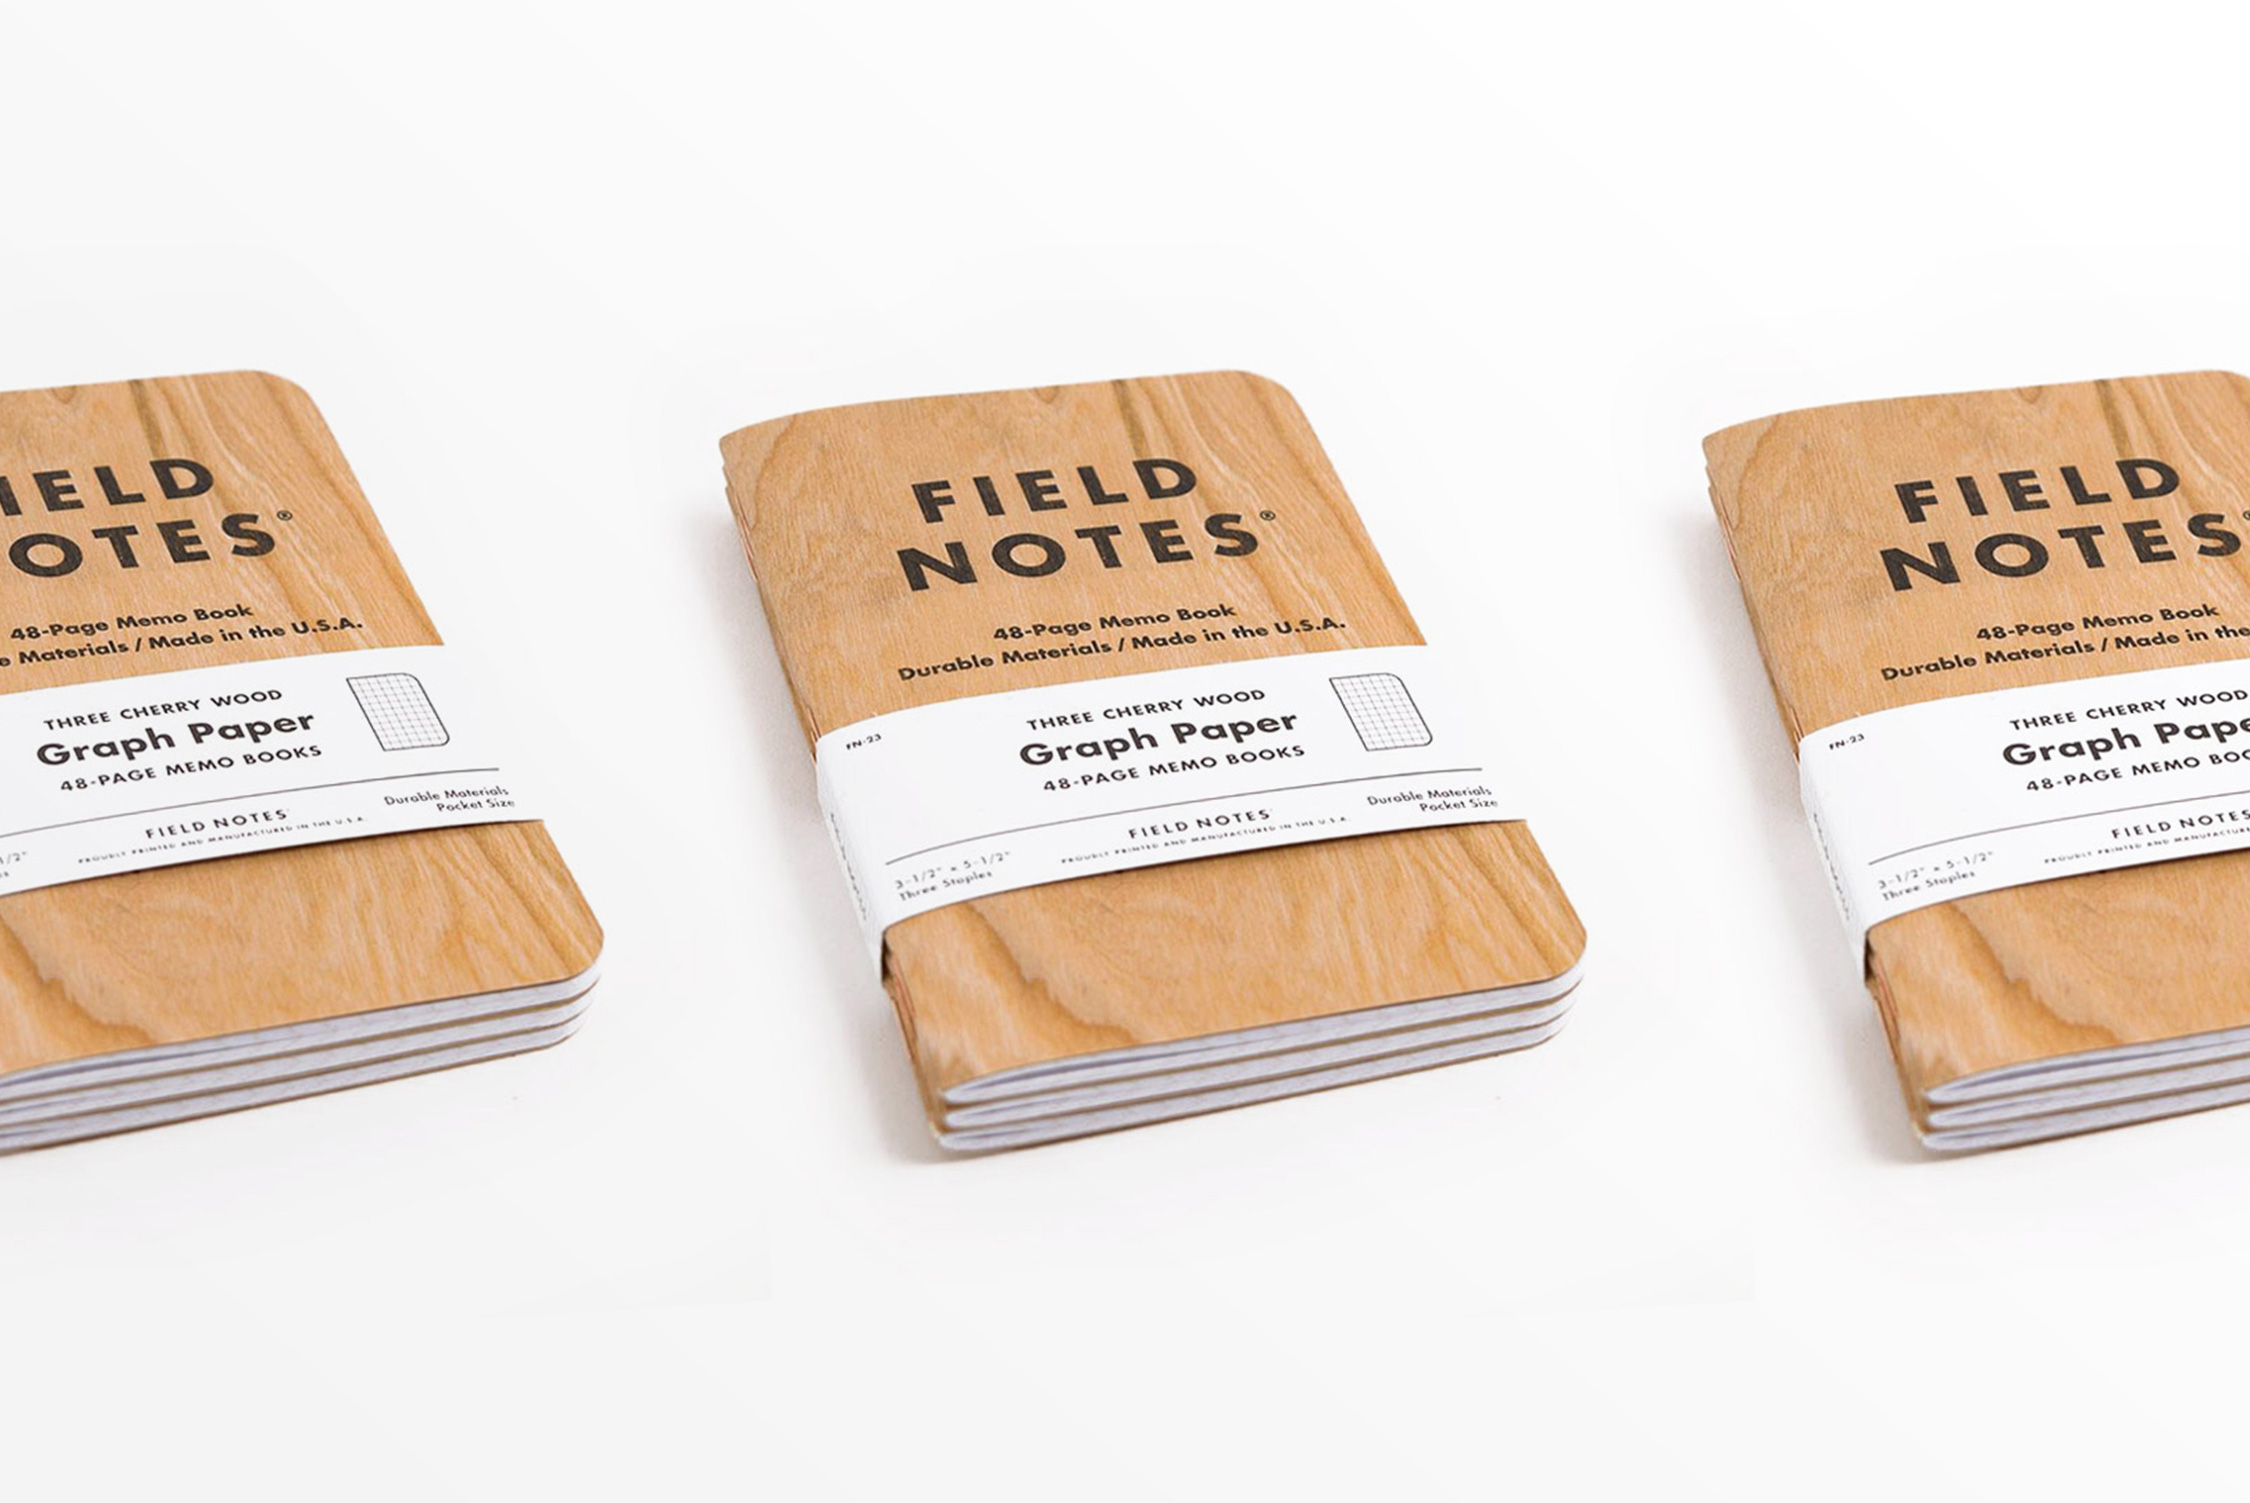 Field Notes Cherry Graph